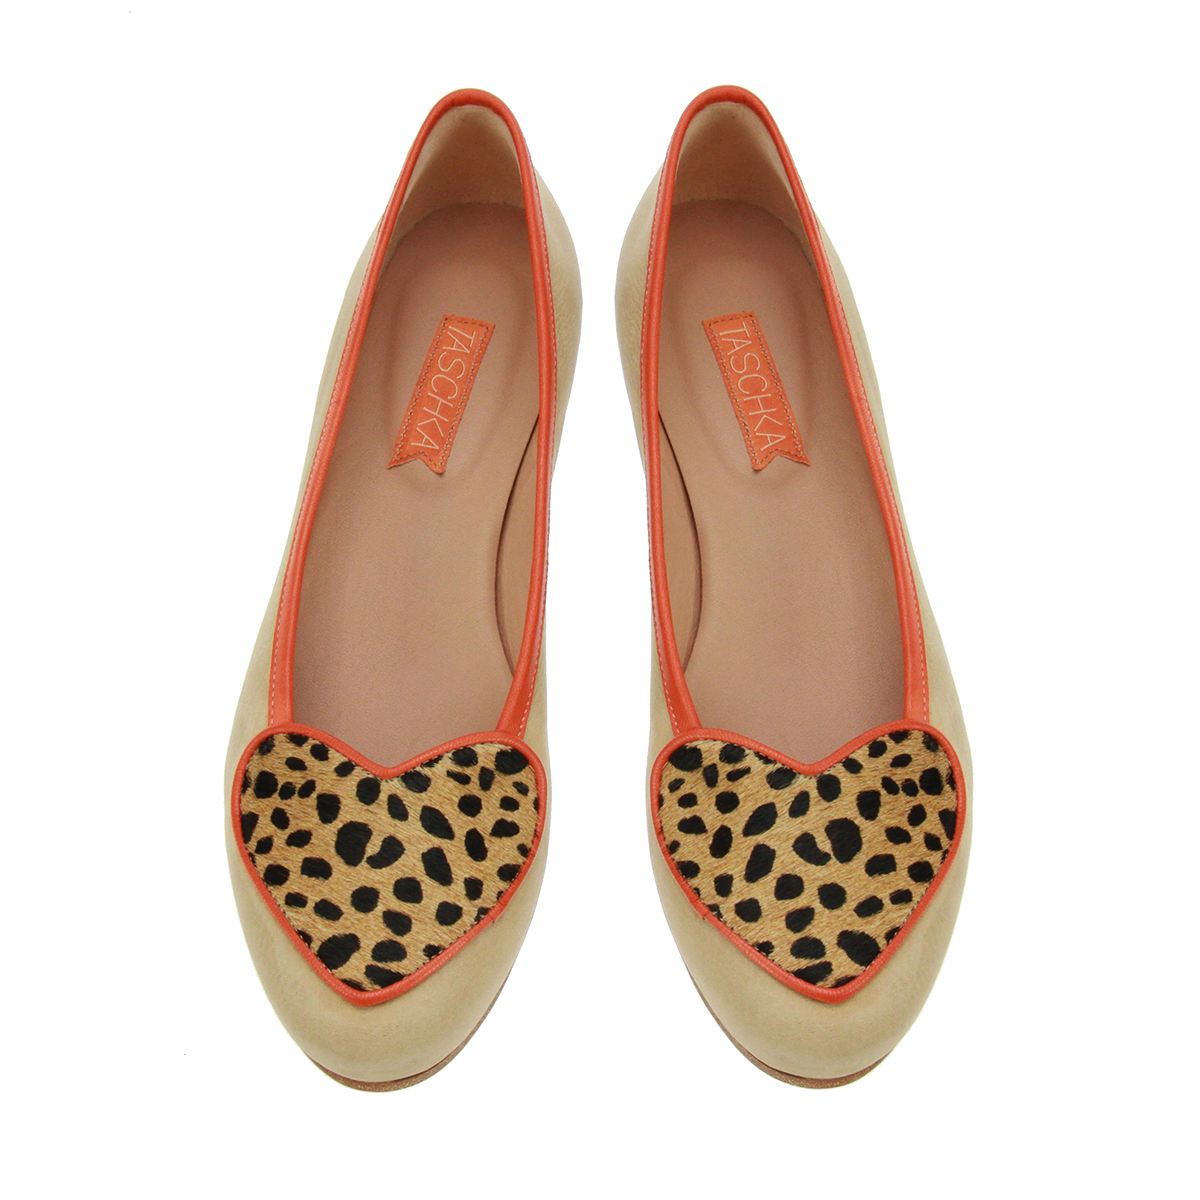 ORY Nude/Coral/Cheetah